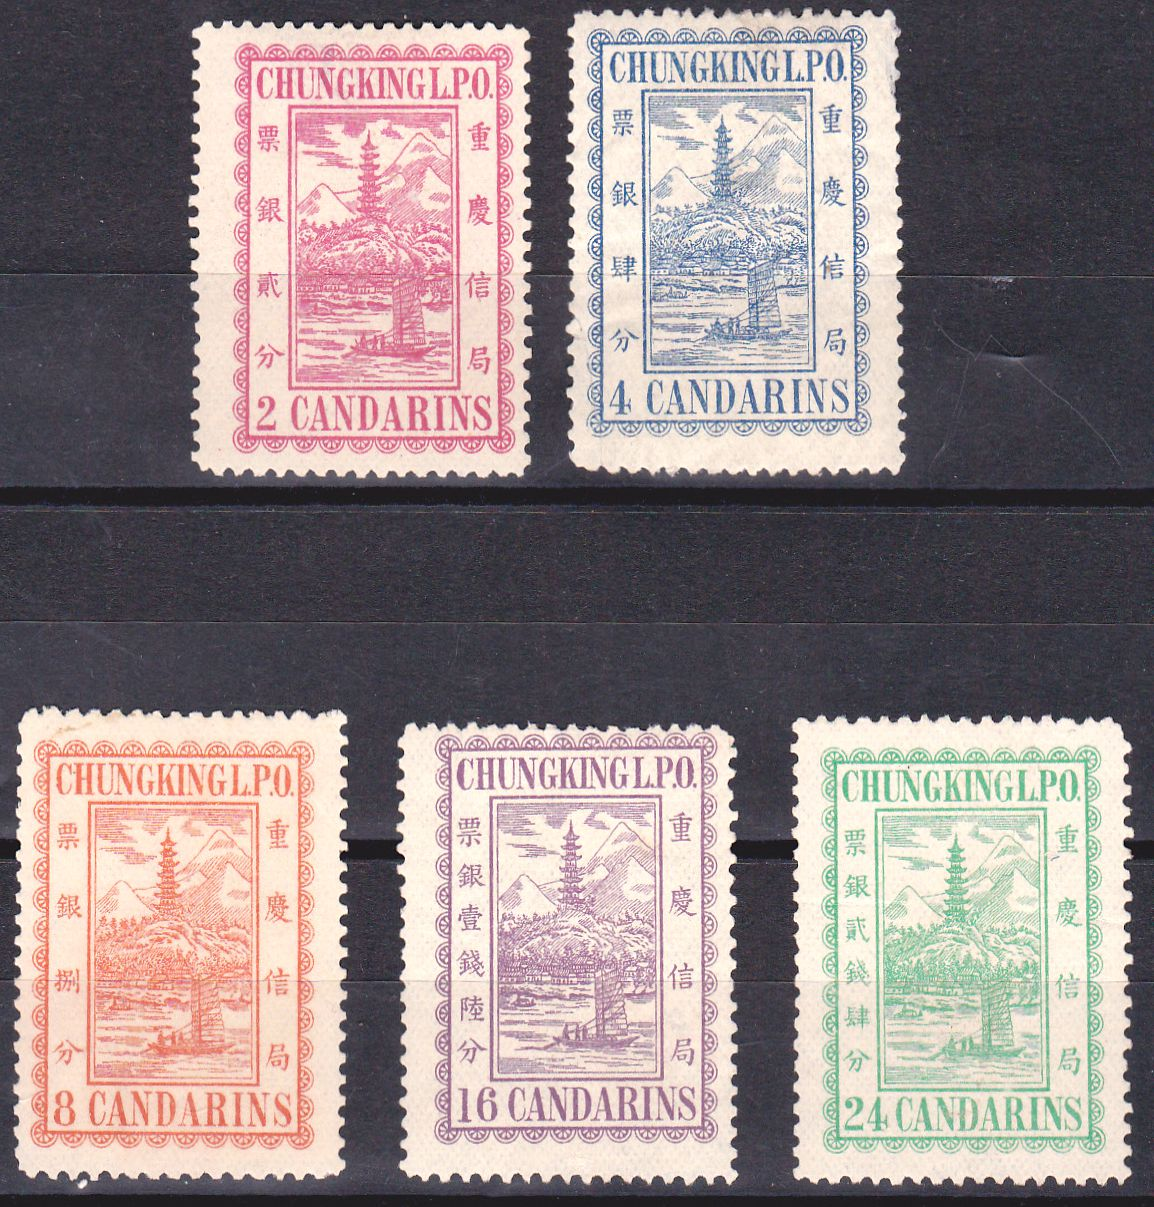 M1108, China Chungking Local Post Office Stamp, Full set 5 pcs, Nov 1894